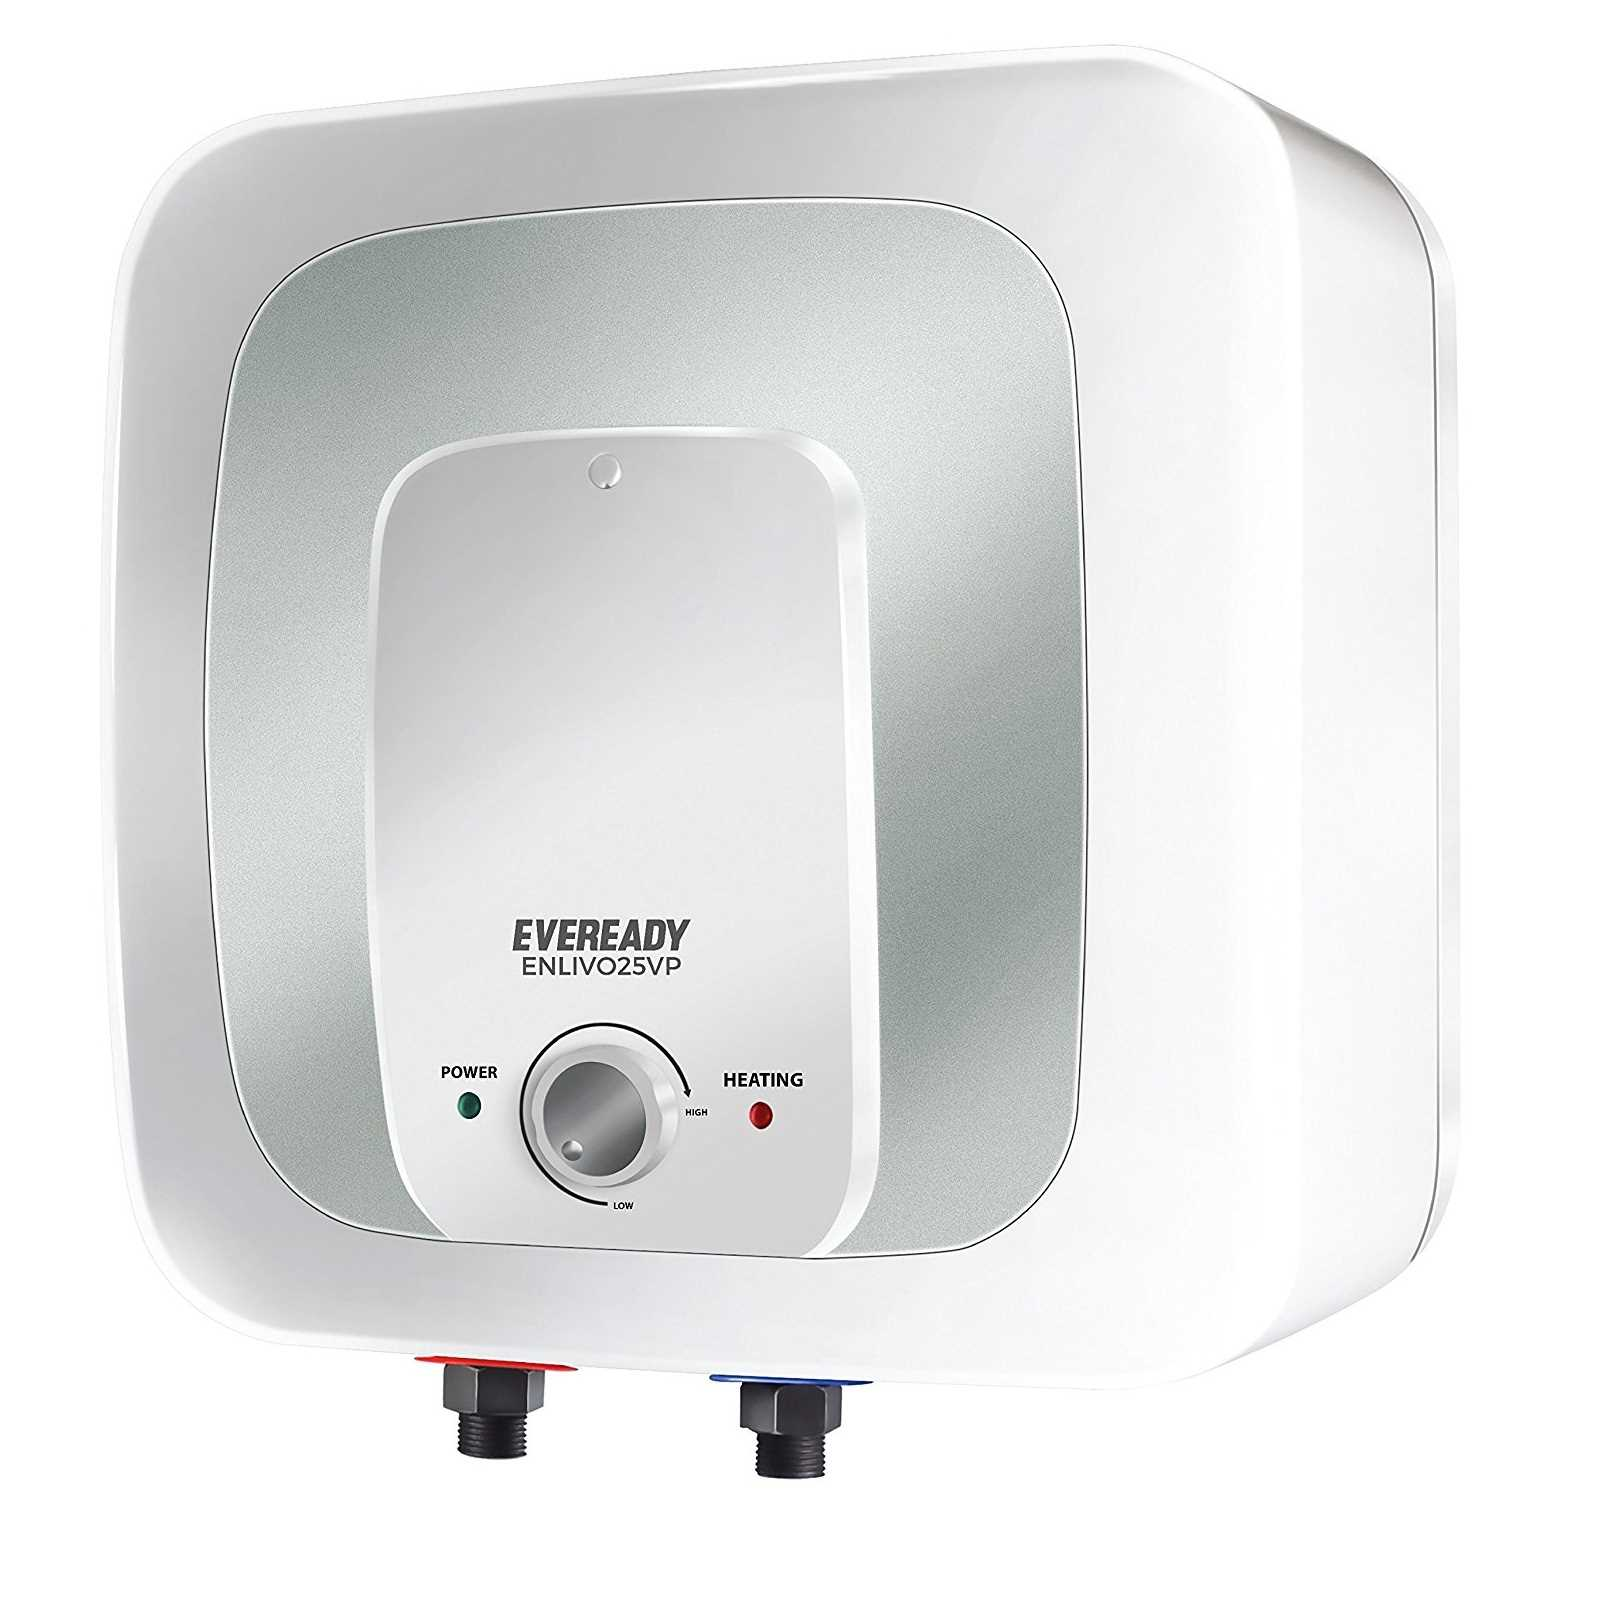 Eveready ENLIVO25VP 25 Litre Storage Water Heater